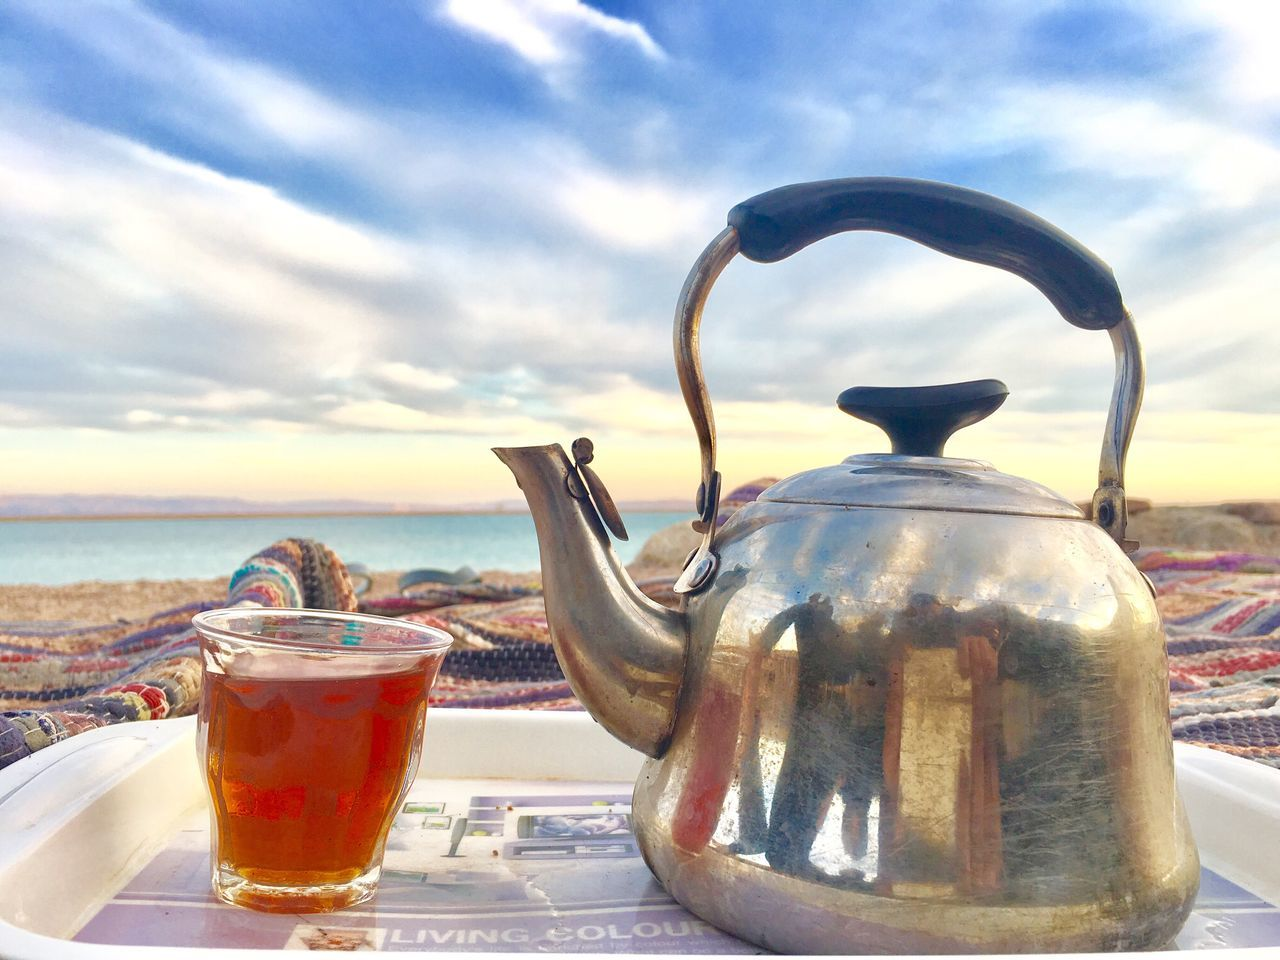 drink, refreshment, sky, sea, food and drink, sunlight, outdoors, teapot, drinking glass, cloud - sky, day, horizon over water, no people, tea - hot drink, water, nature, close-up, beauty in nature, mint tea, freshness